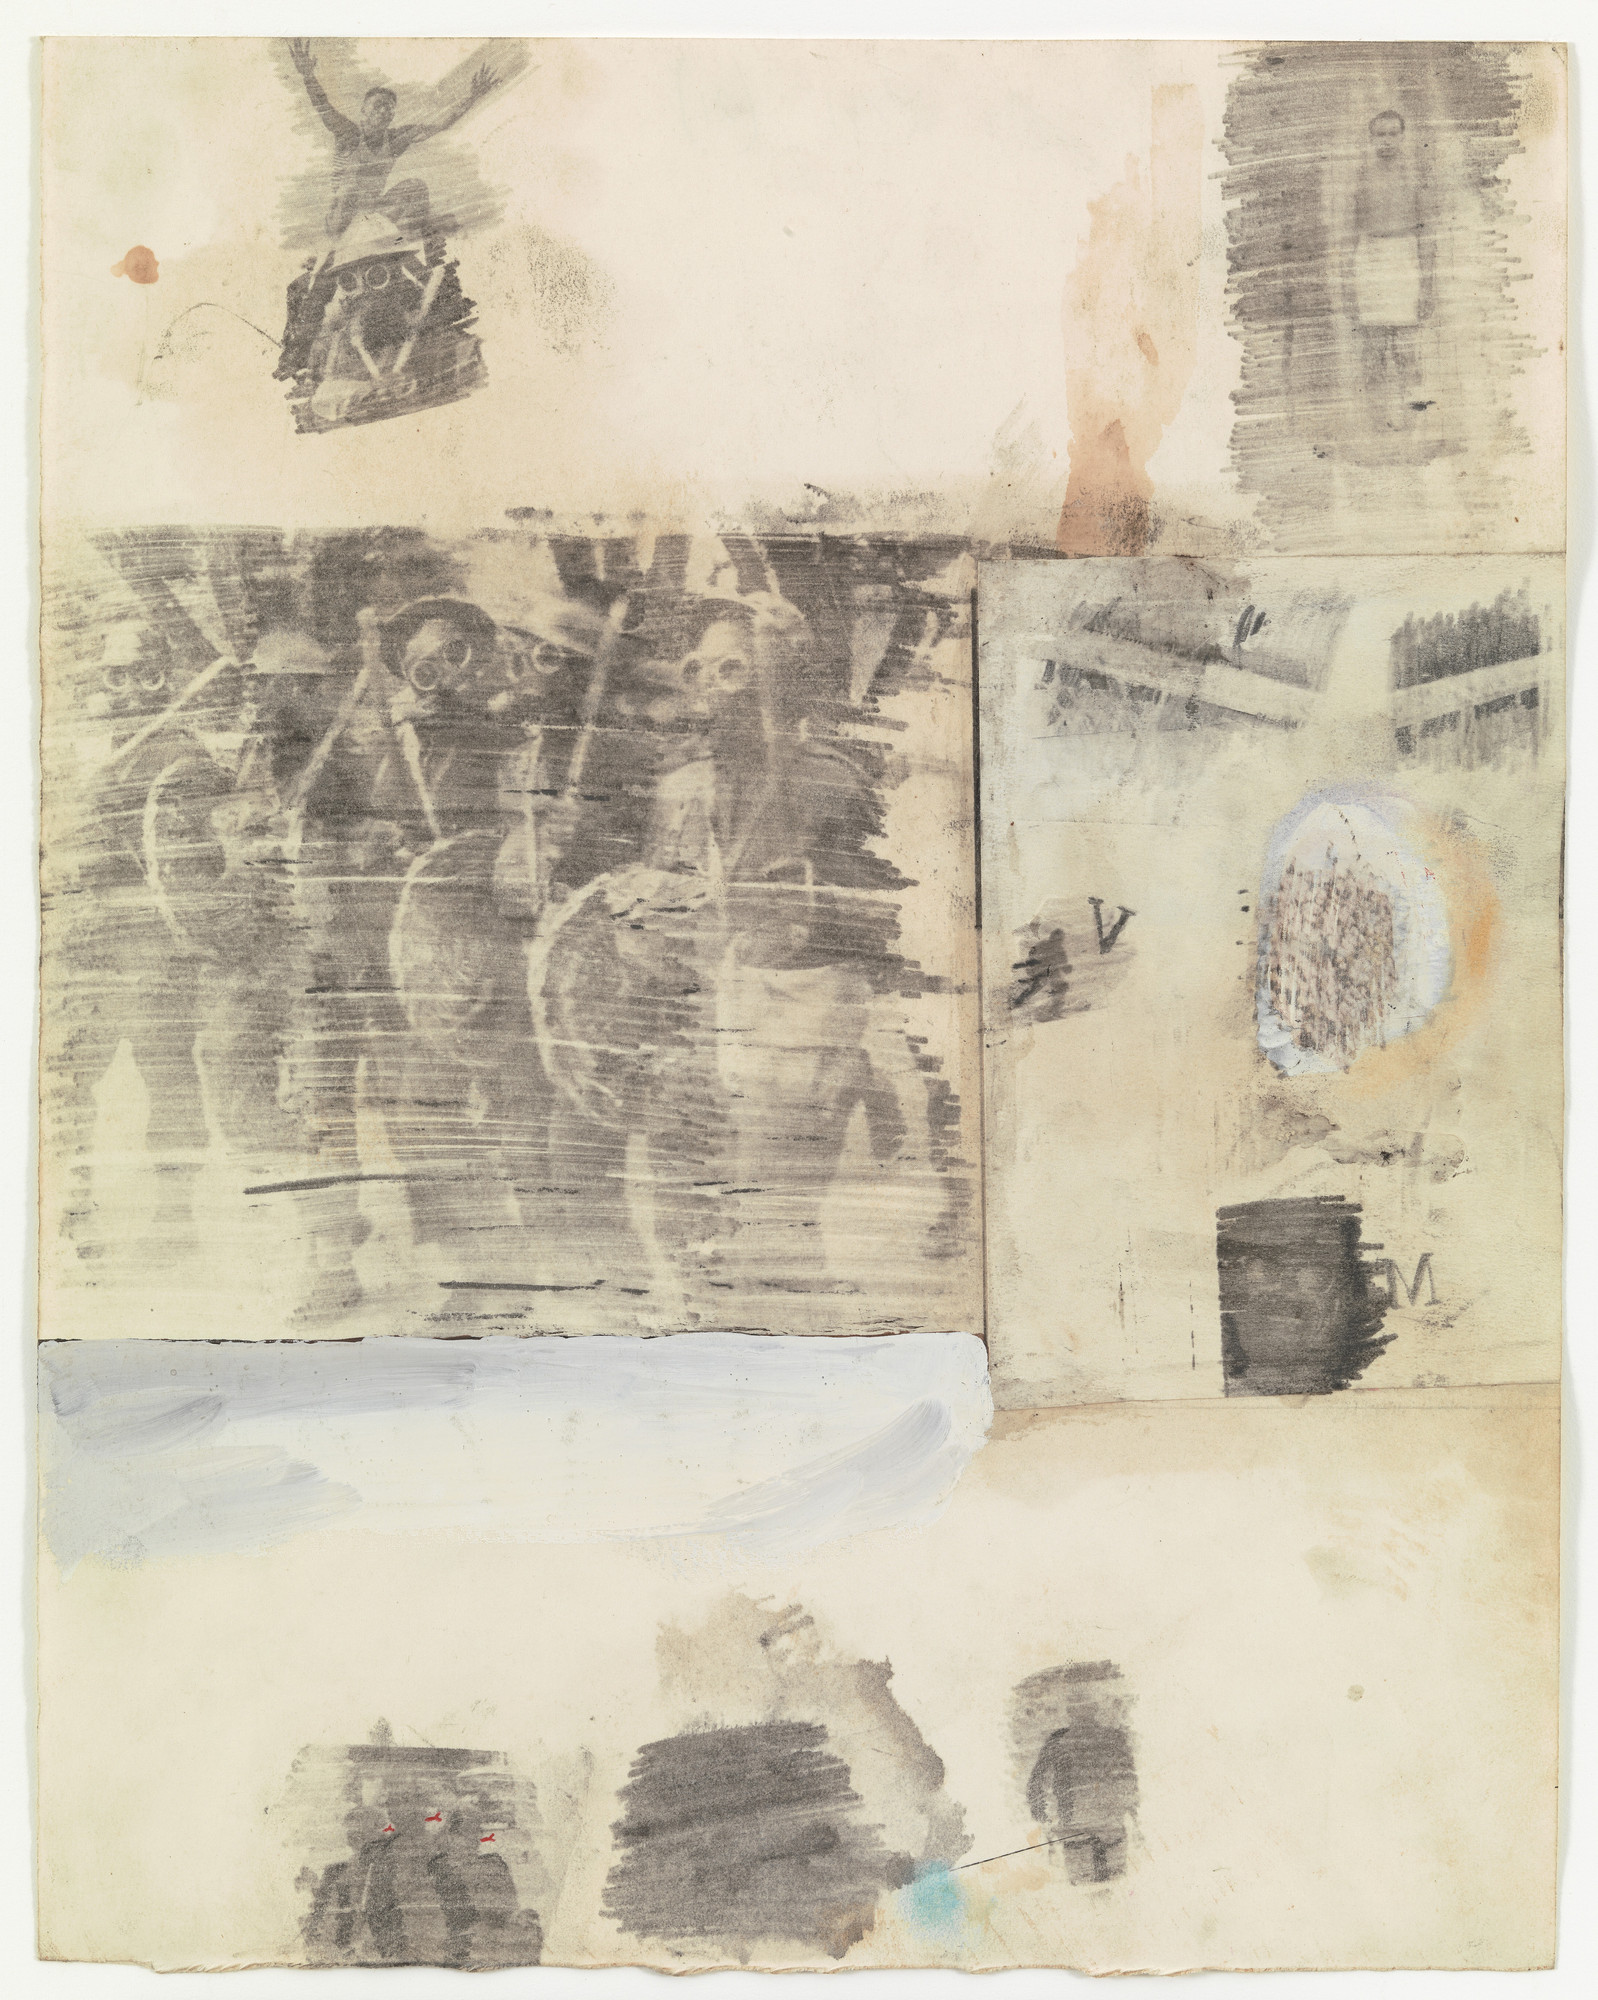 Robert Rauschenberg. Canto XXI: Circle Eight, Bolgia 5, The Grafters from the series Thirty-Four Illustrations for Dante's Inferno. (1959-60)